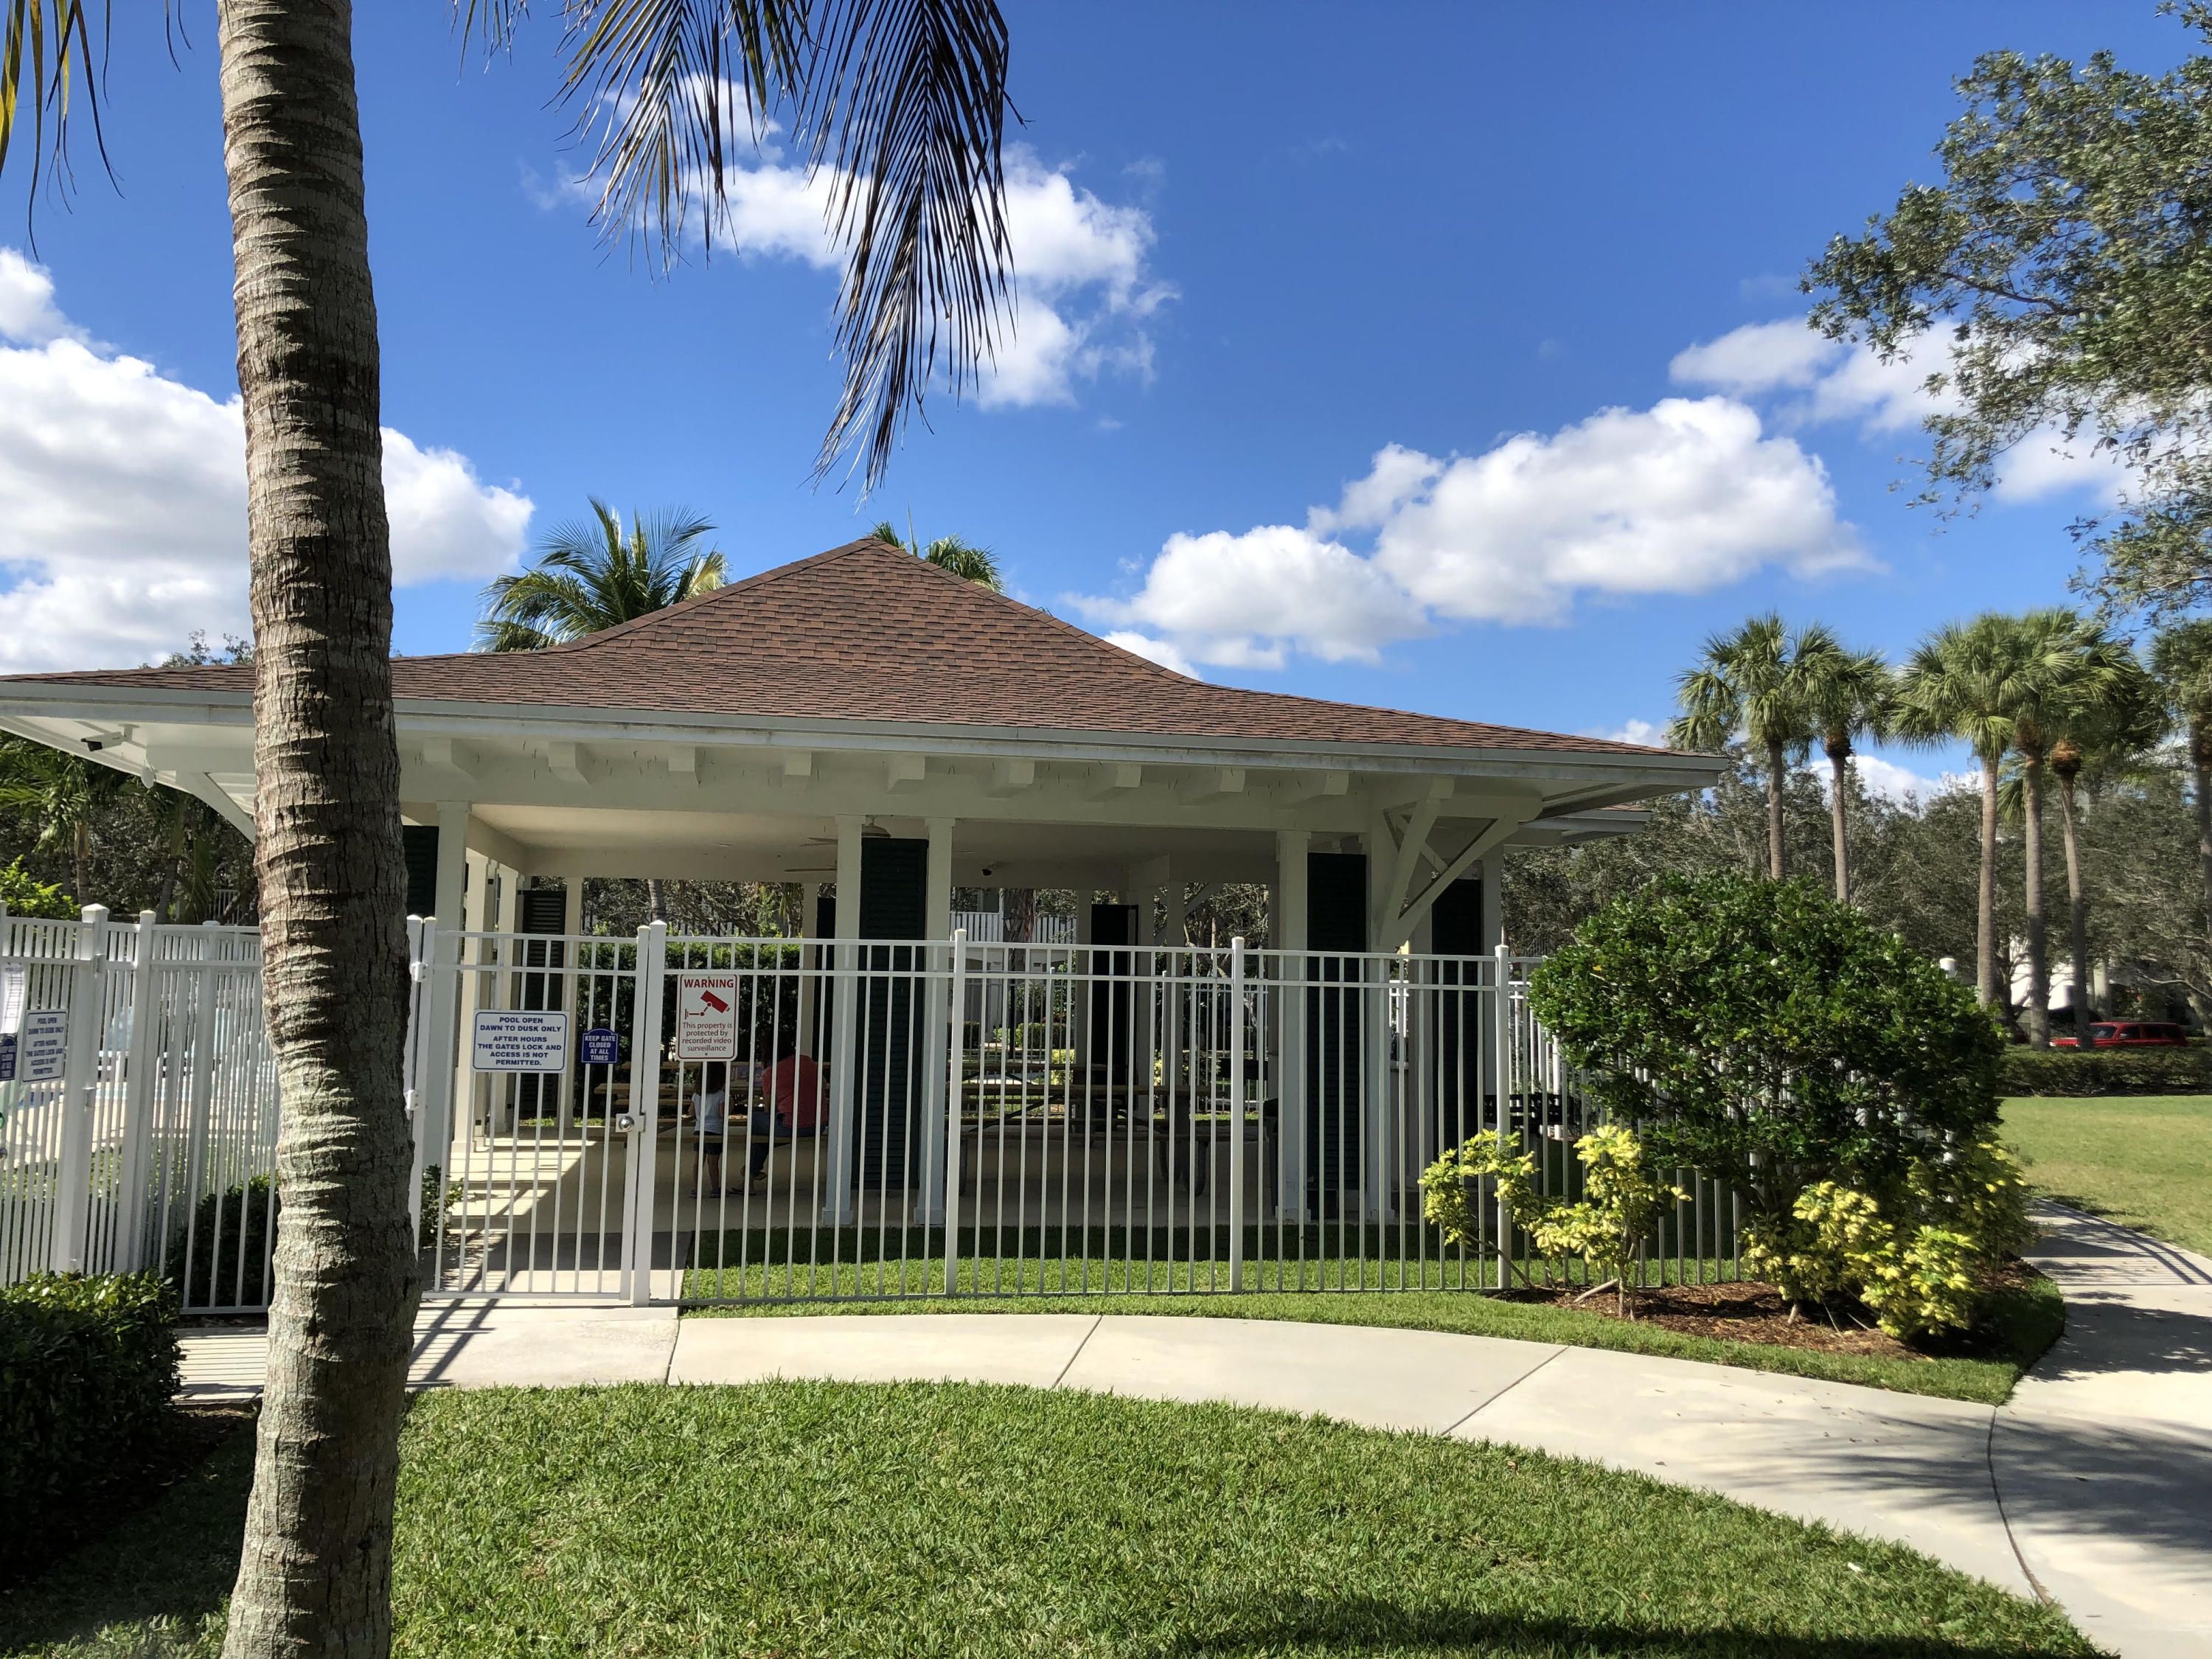 3057 Community Drive, Jupiter, Florida 33458, 3 Bedrooms Bedrooms, ,2.1 BathroomsBathrooms,F,Townhouse,Community,RX-10502035